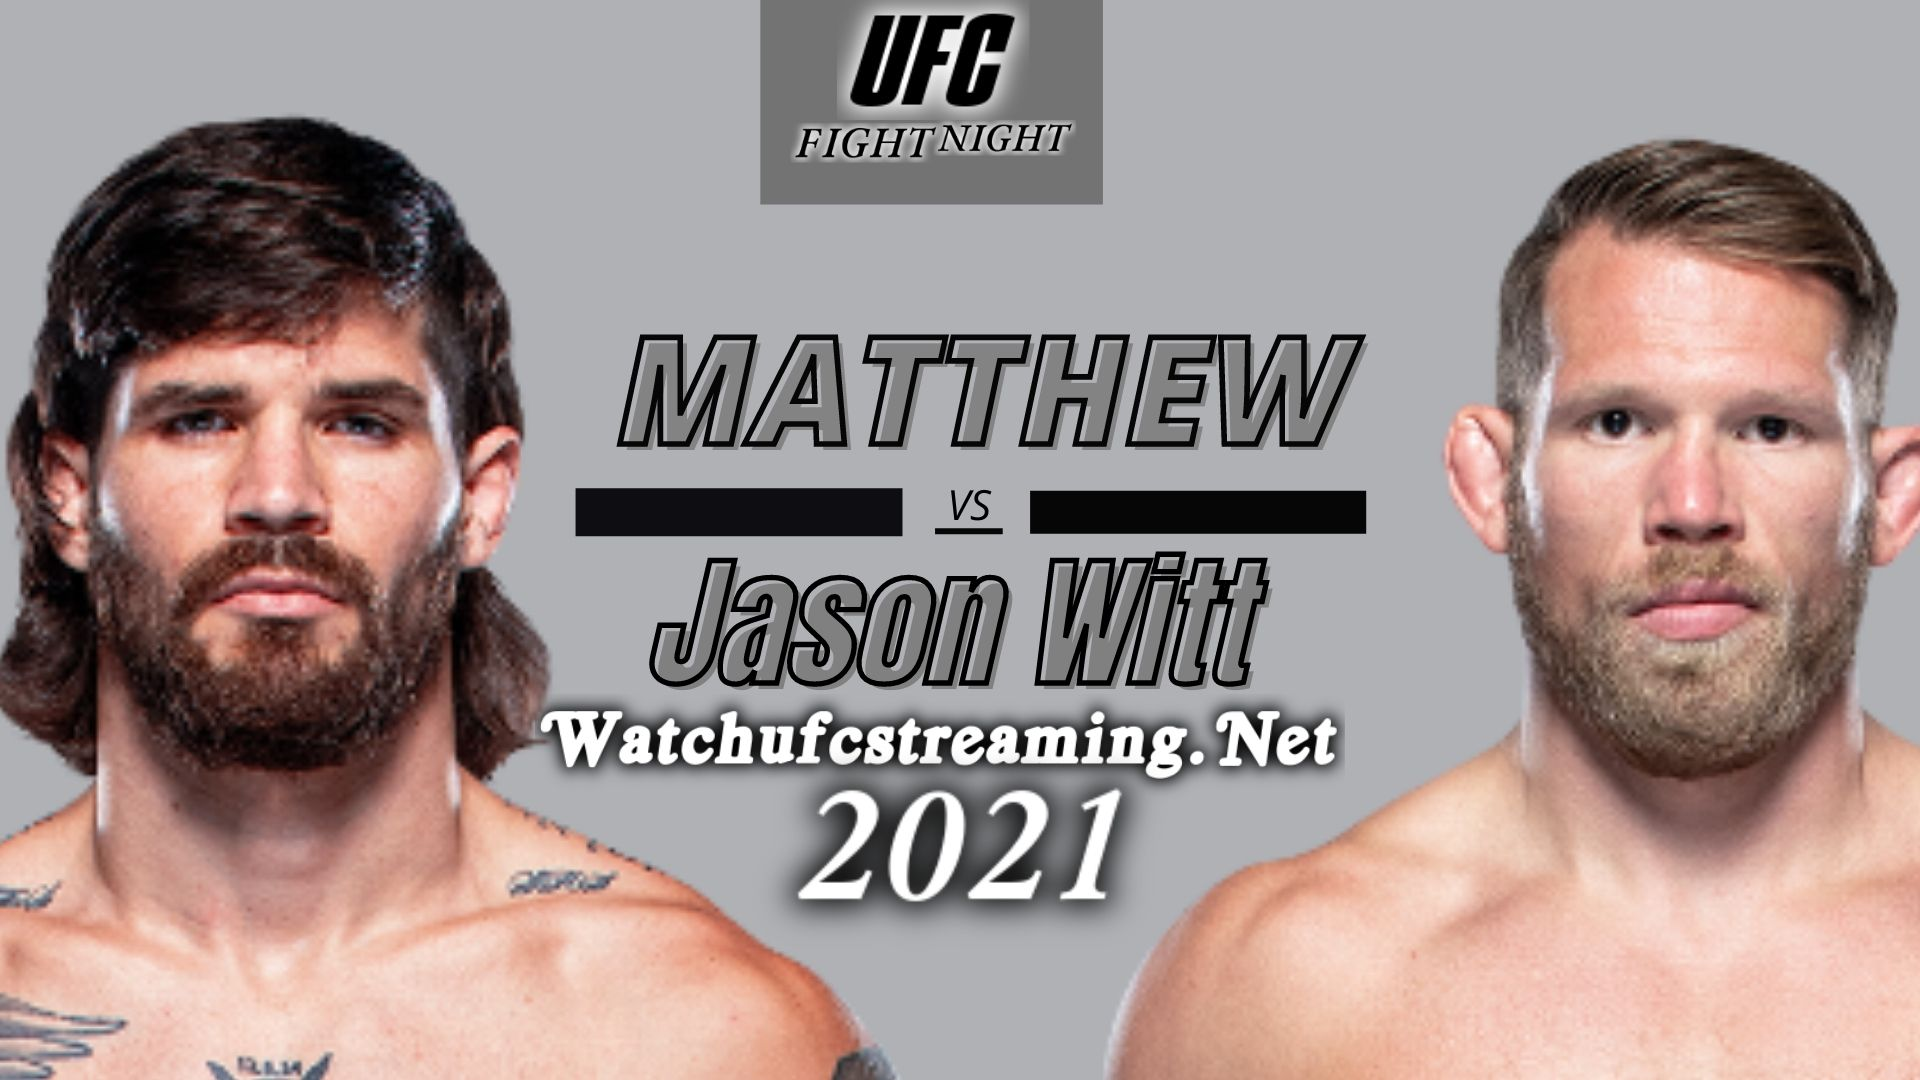 UFC | Matthew Vs Jason Highlights 2021 - Welterweight